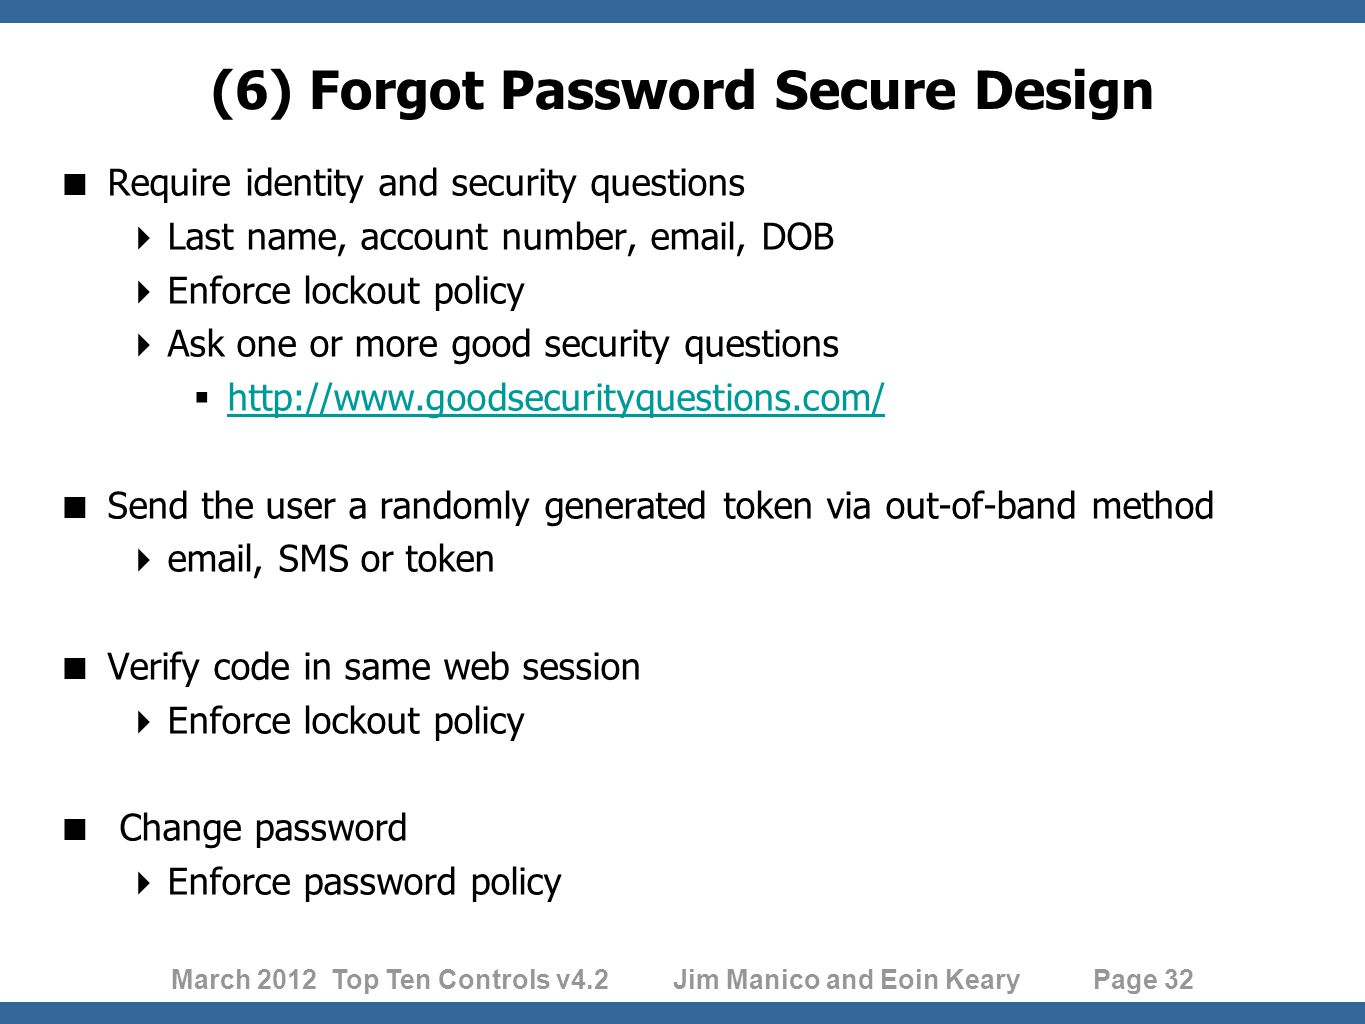 March 2012 Top Ten Controls v4.2 Jim Manico and Eoin Keary Page 32  Require identity and security questions  Last name, account number, email, DOB  Enforce lockout policy  Ask one or more good security questions  http://www.goodsecurityquestions.com/ http://www.goodsecurityquestions.com/  Send the user a randomly generated token via out-of-band method  email, SMS or token  Verify code in same web session  Enforce lockout policy  Change password  Enforce password policy (6) Forgot Password Secure Design